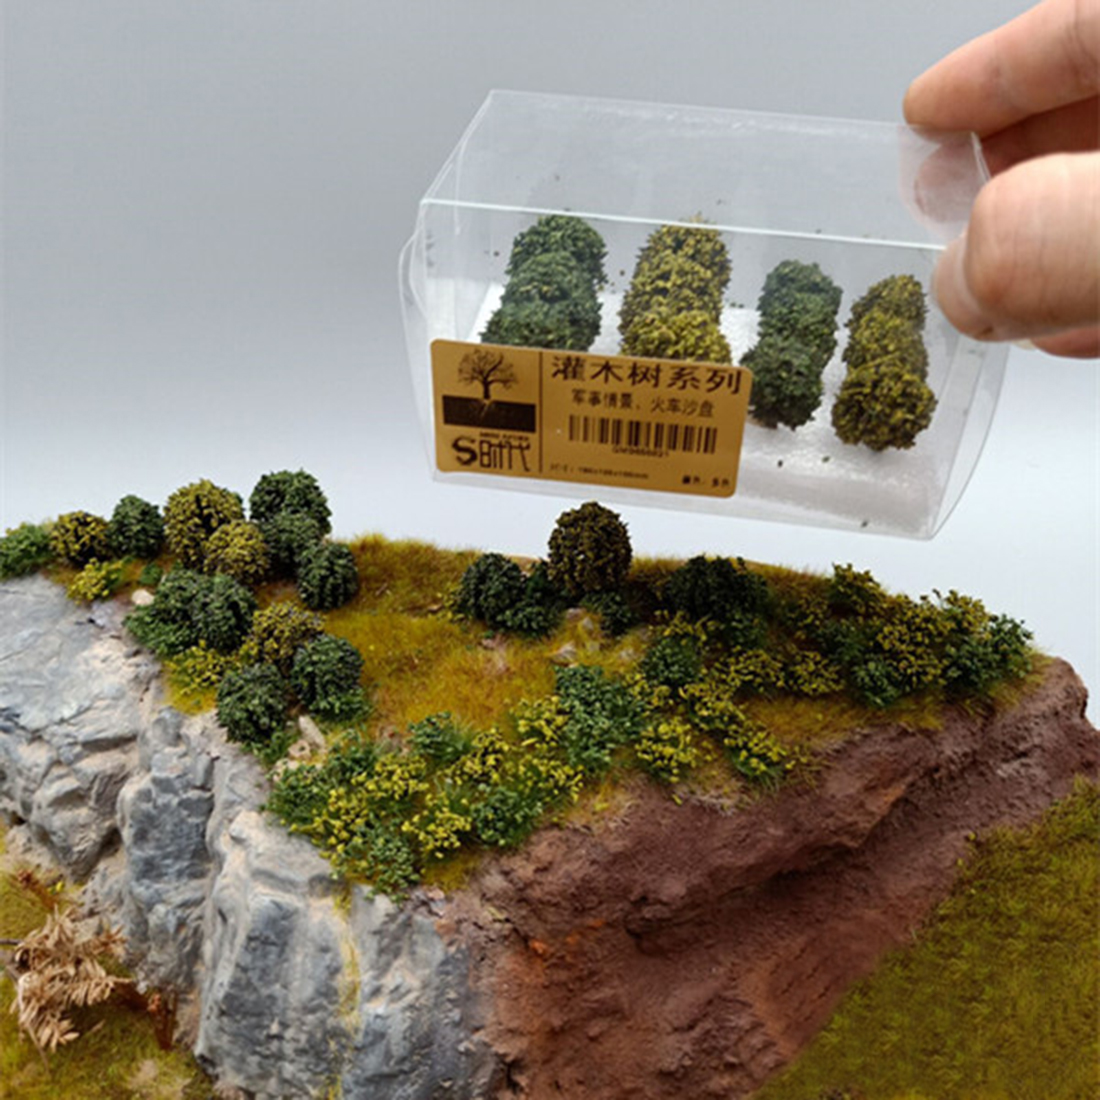 12Pcs Simulation Bush Tree Scene <font><b>Model</b></font> for 1:35/1:48/1:72/1:87 Scale Sand Table <font><b>Model</b></font> <font><b>Building</b></font> <font><b>Kits</b></font> image